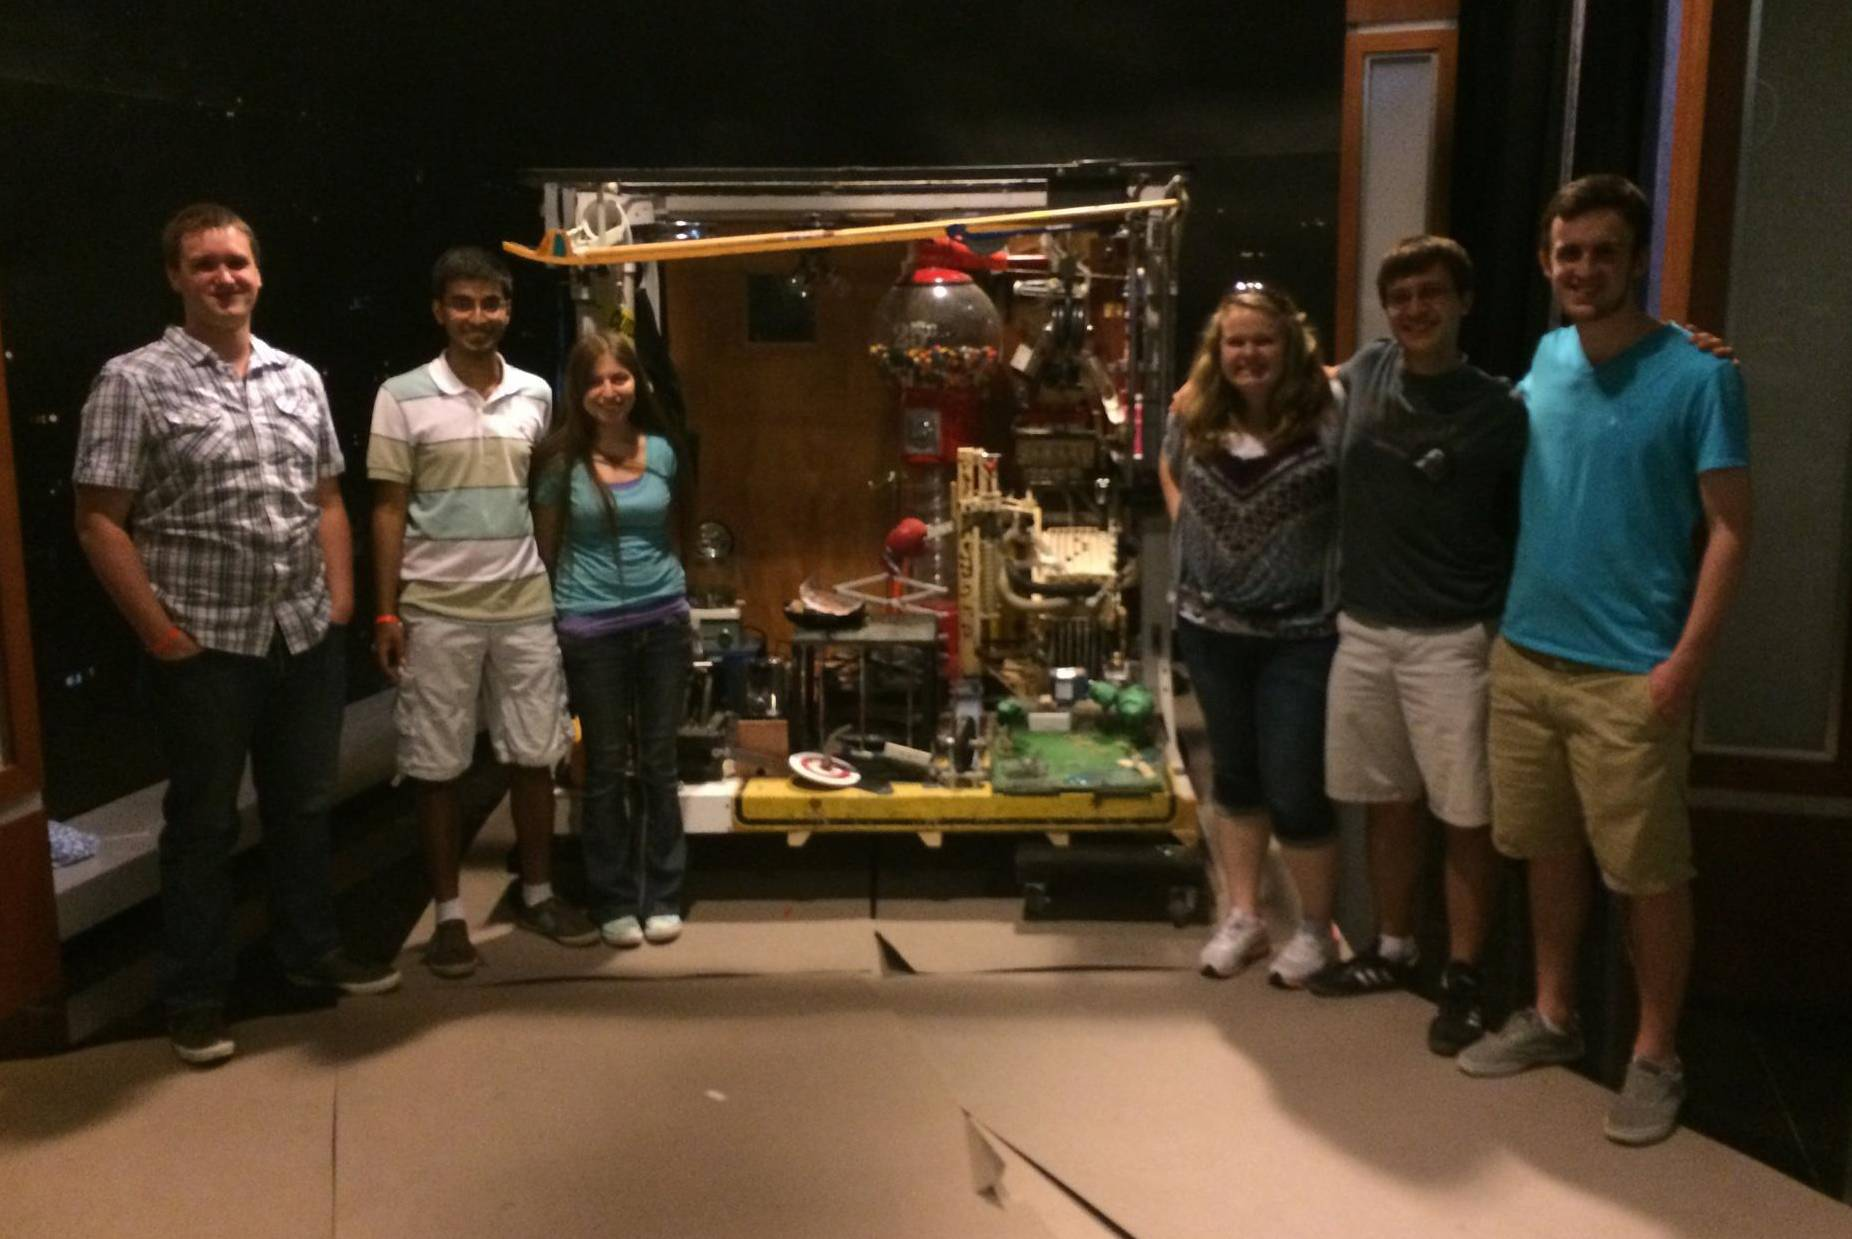 "Adam Bahrainwala (second from left) and his engineering team stand next to their award-winning Rube Goldberg Machine on the ""Jimmy Kimmel Live!"" stage at the El Captain Theater in Hollywood. The team will show off the machine Wednesday night on the Kimmel show. From left to right, David Cannon of Valparaiso, Ind.; Bahrainwala, of Palatine; Jordan Vallejo of Los Angeles; Rebecca Russell of Elkhorn, Wis.; Benjamin Hilker of Edwardsville, Ill.; and Andrew Rawlins of Greenwood, Ind."